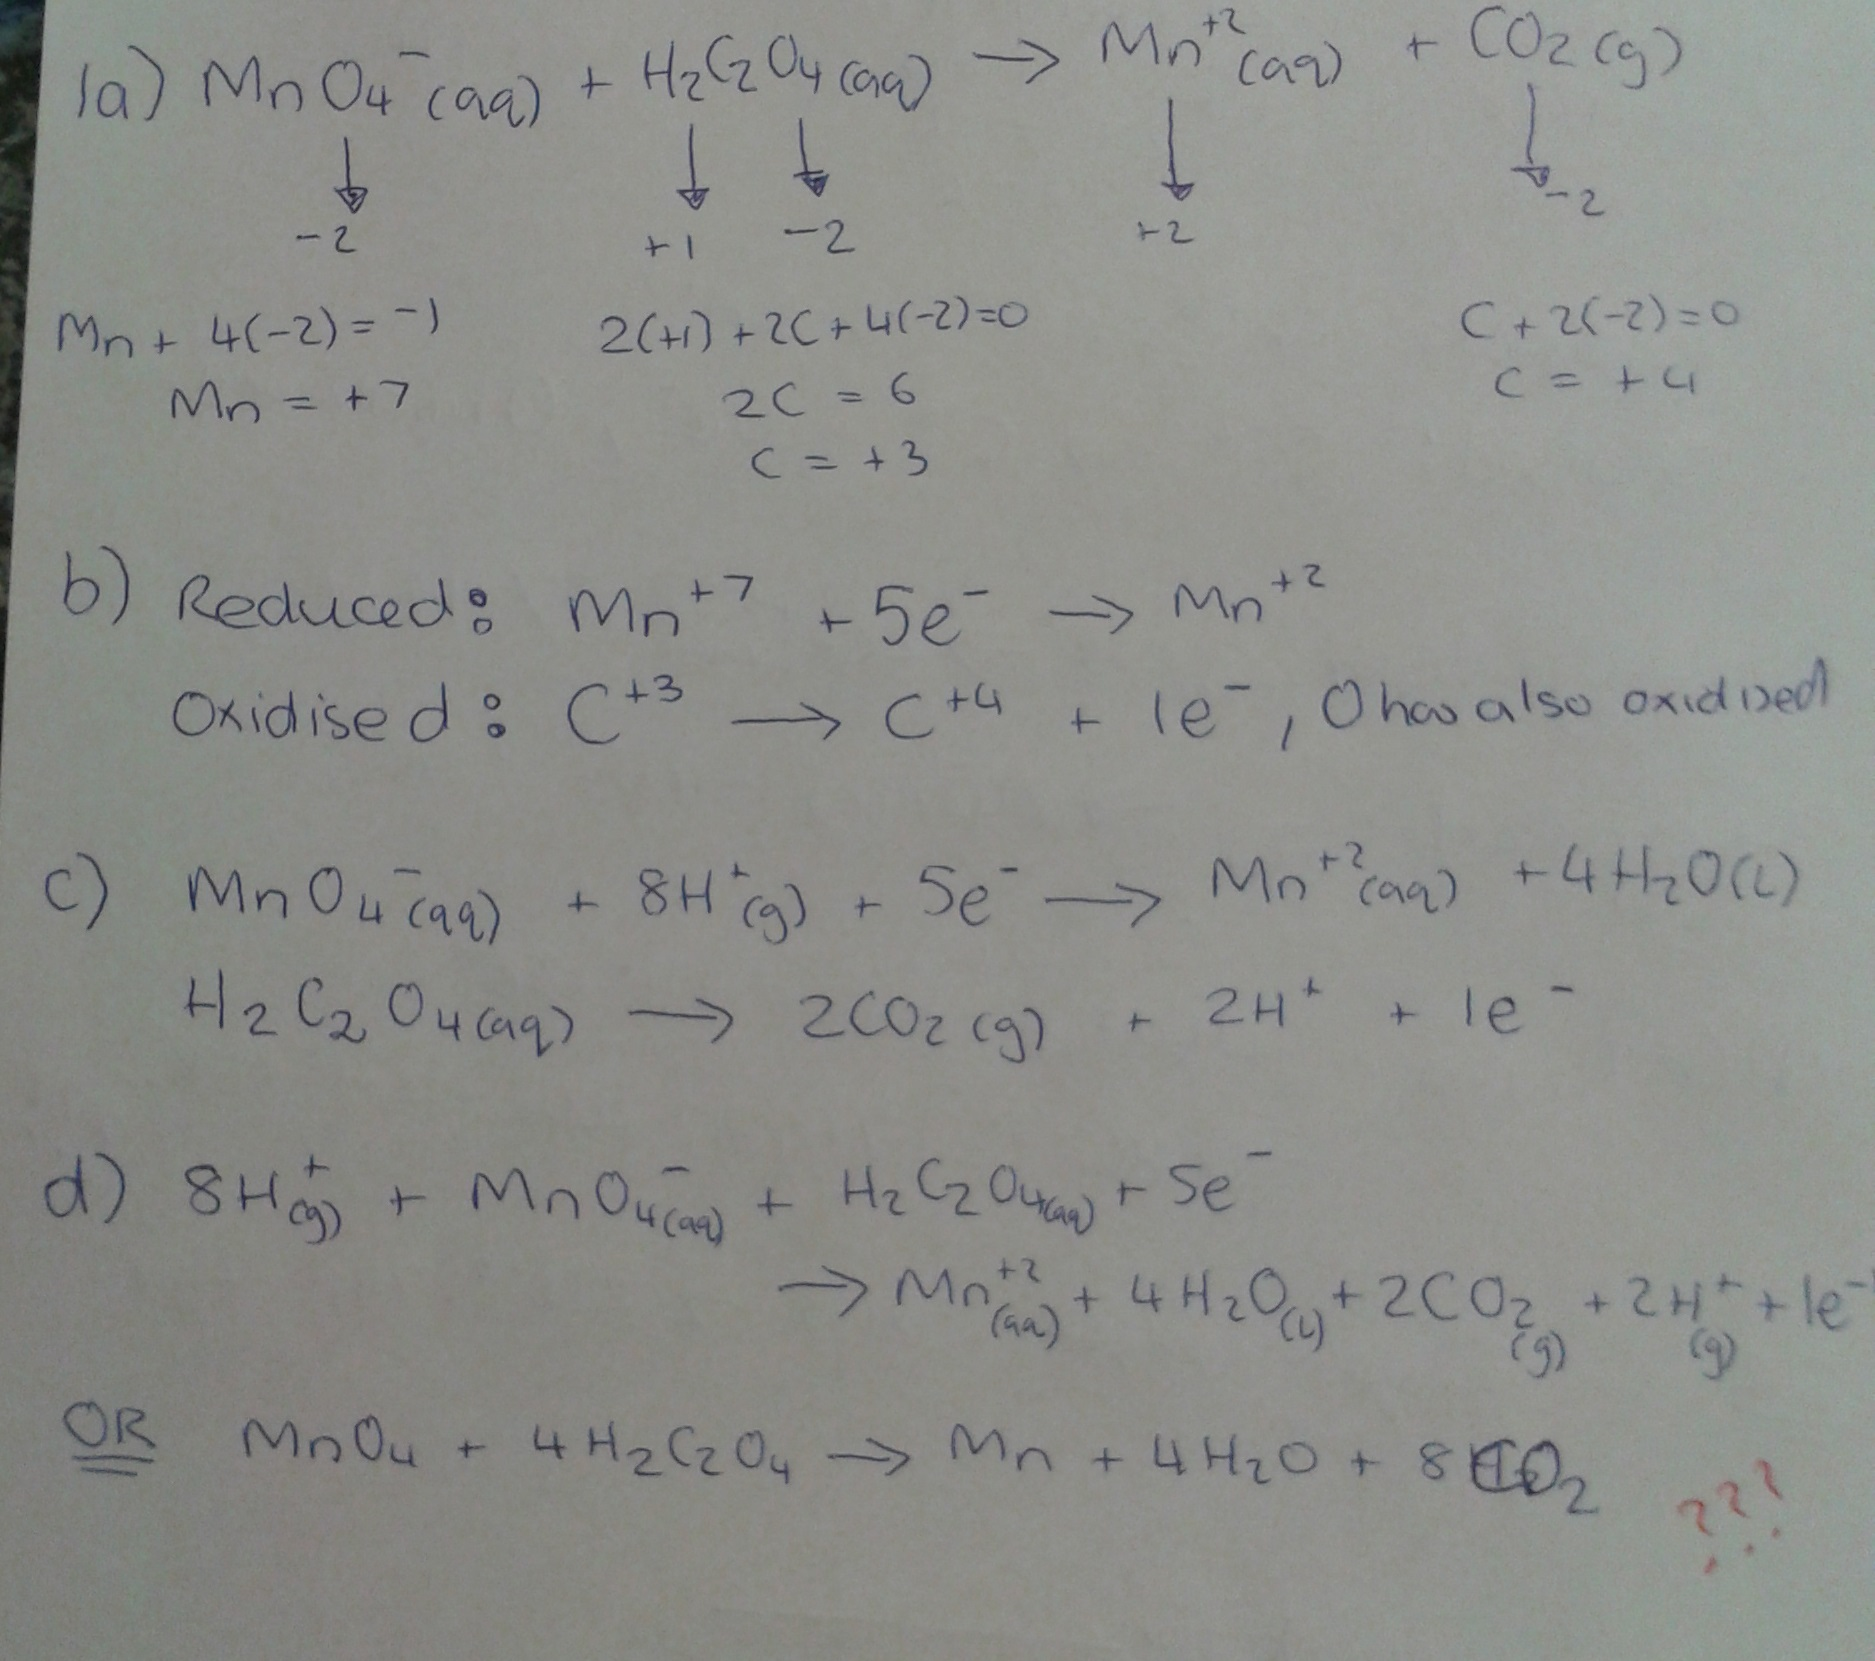 moles of h2c2o4 which reacted with mno4